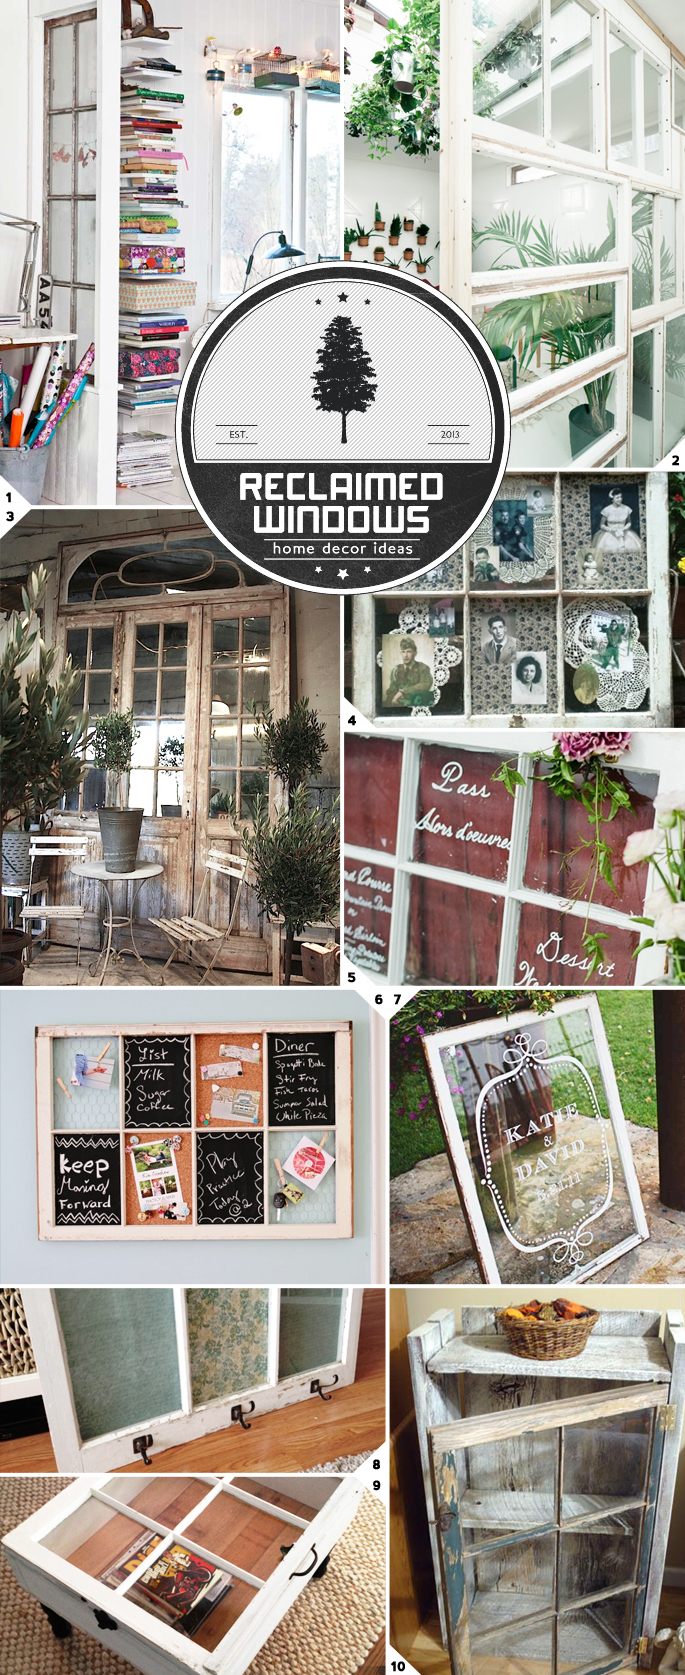 DIY Ideas For Old Windows